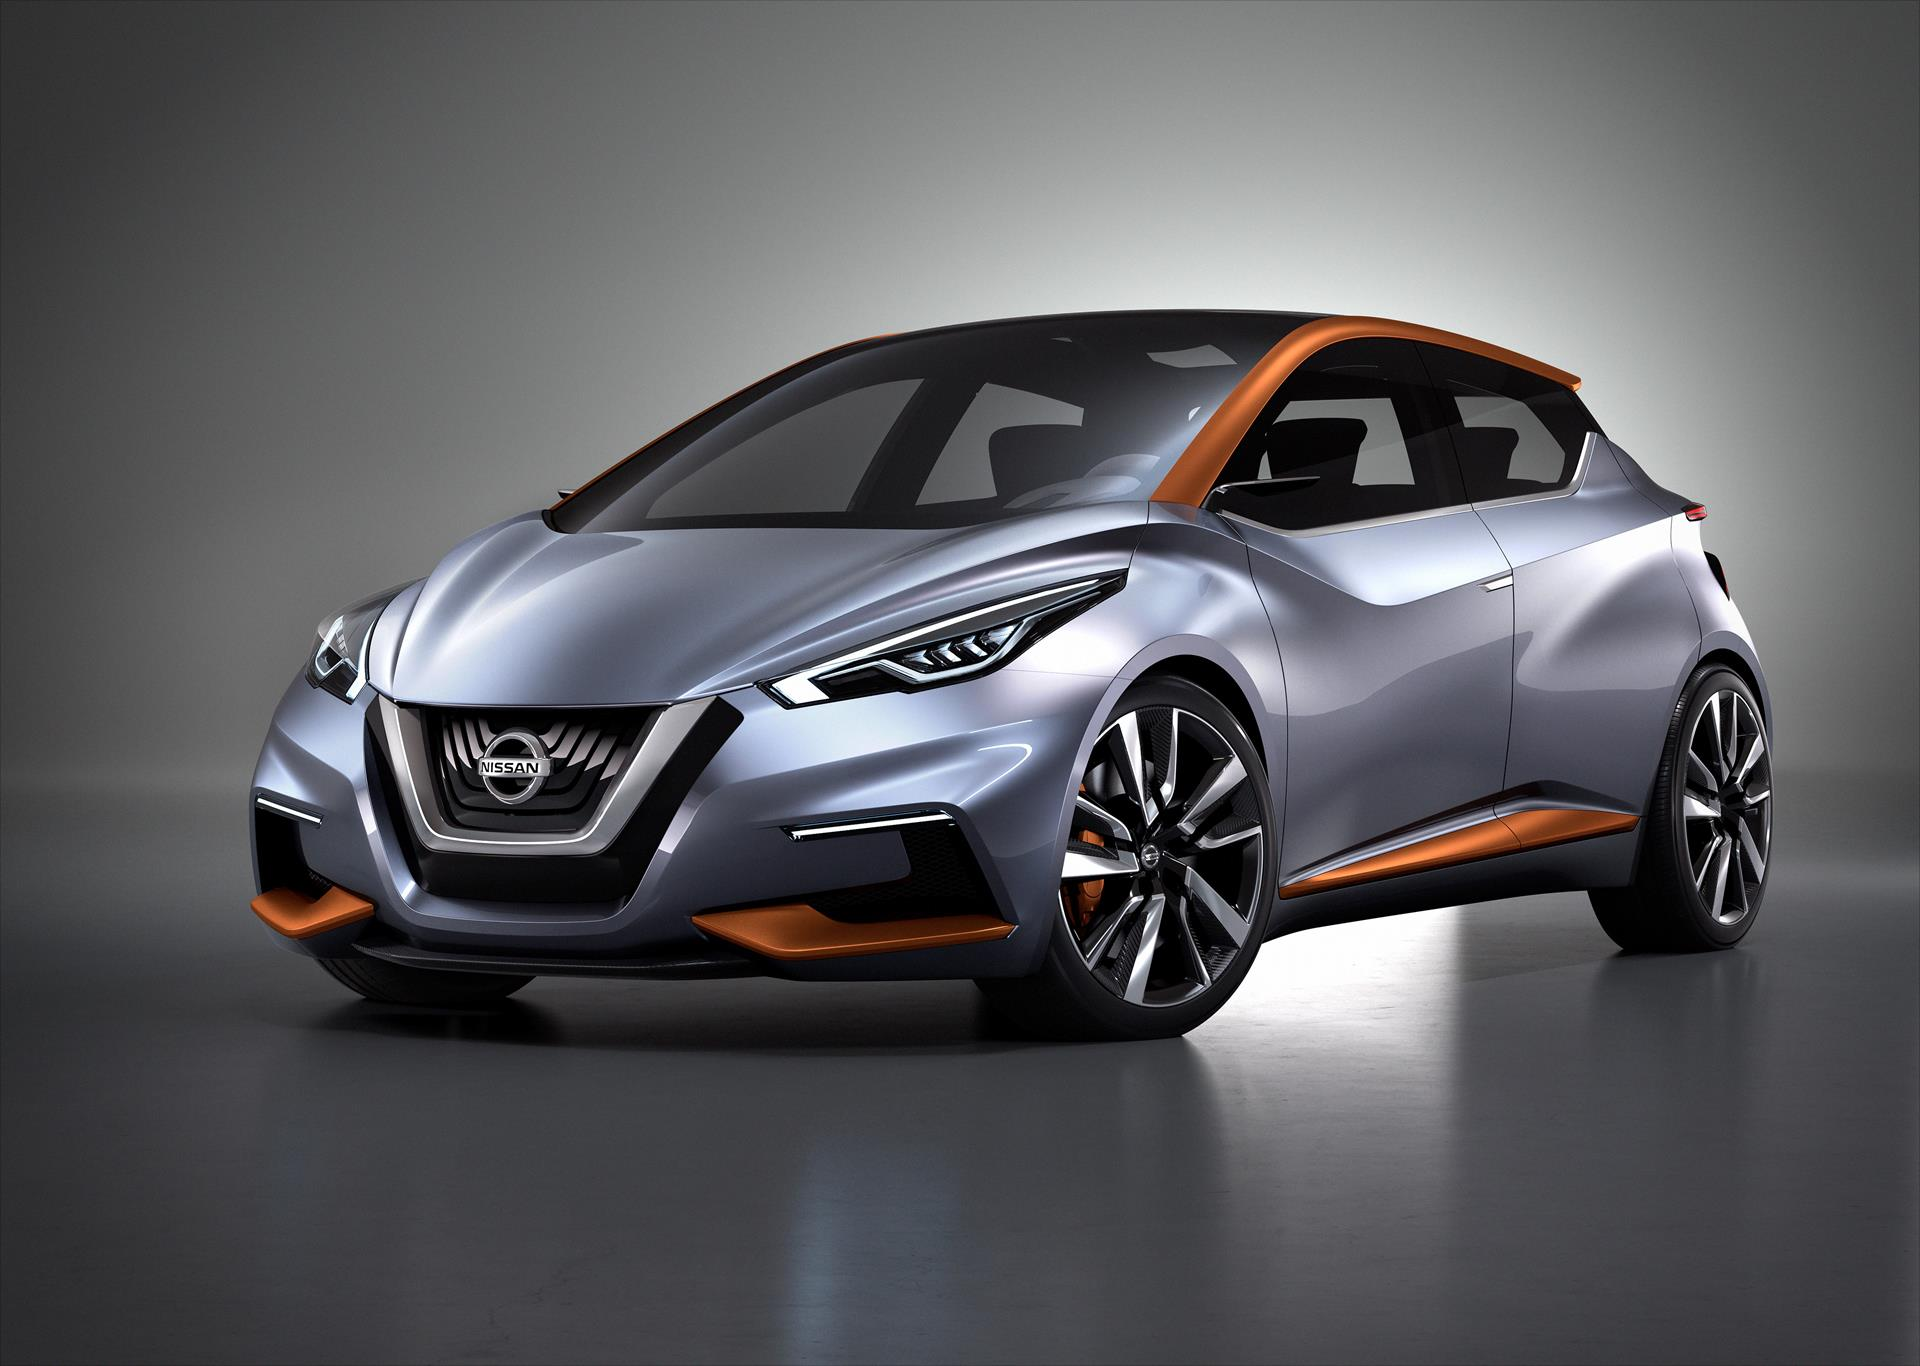 2015 Nissan Sway Concept Technical and Mechanical ...